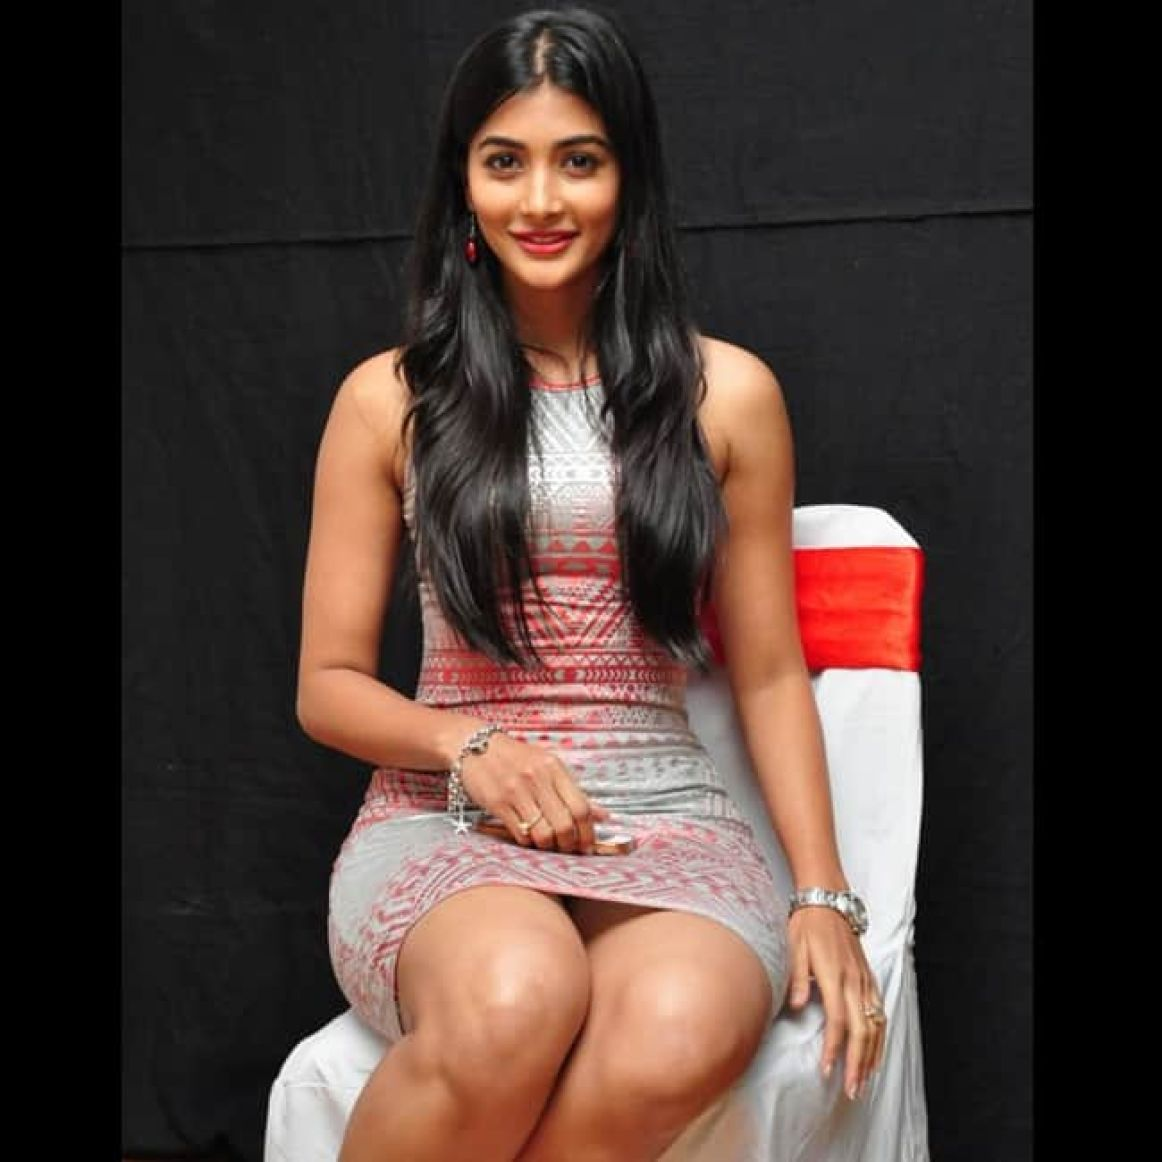 Pooja Hegde looks hot in black and white picture   Pooja Hegde hot & sexy  pictures   Celebs Photo Gallery   India.com Photogallery